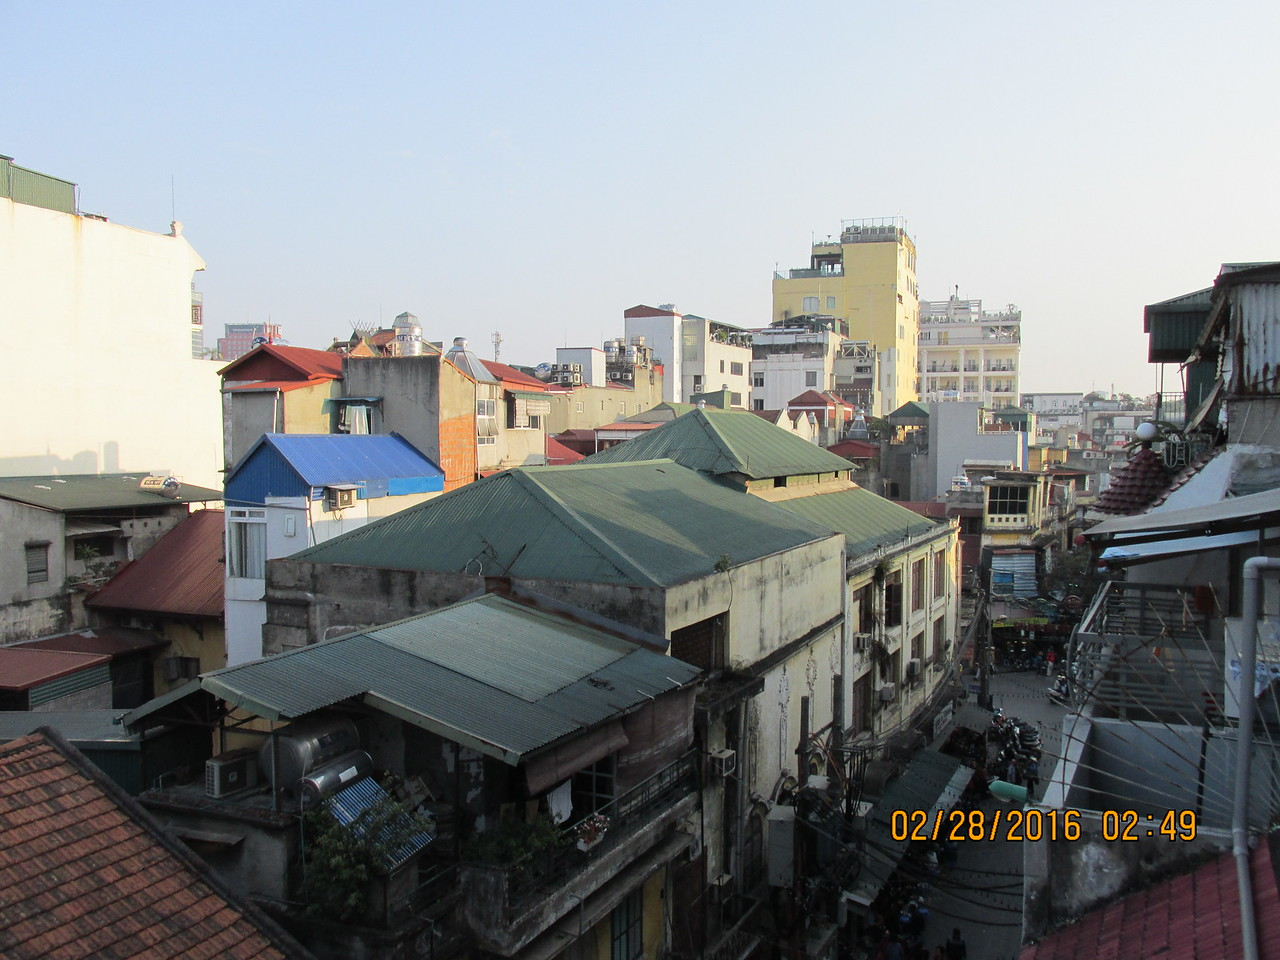 0037 - View from Balcony of Essence d'Orient Hotel overlooking Ta Hiem St in Old Quarter - Hanoi Vietnam - Date Correct but Time on Pic is Wrong